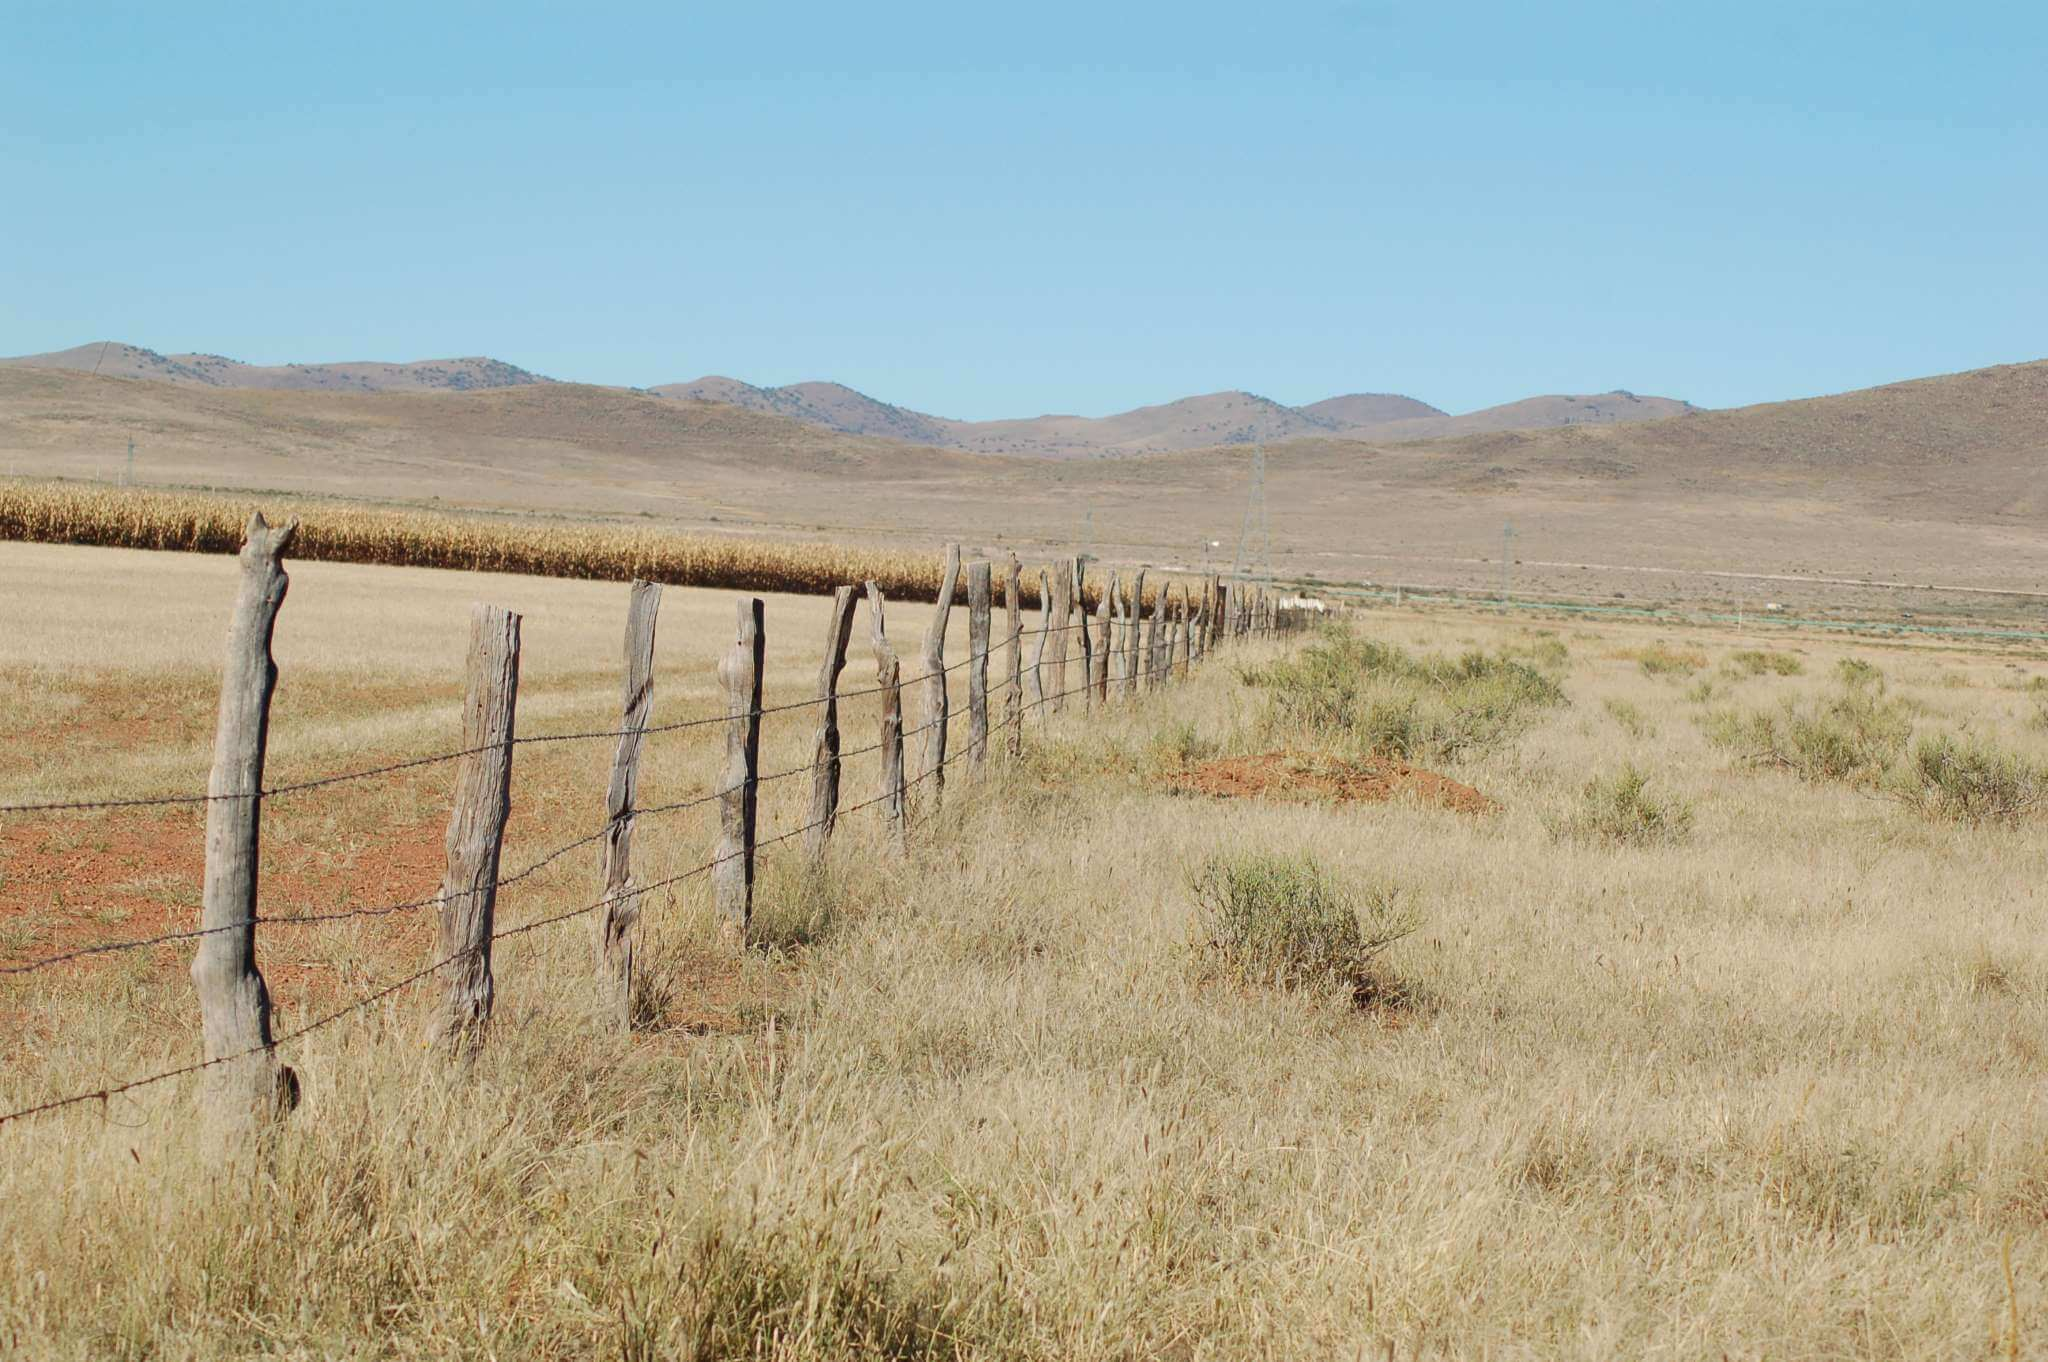 Close-up of cropland conversion; the right side of the fence line shows the high quality grassland that was lost on the left side of the fence. Photo © Greg Levandoski